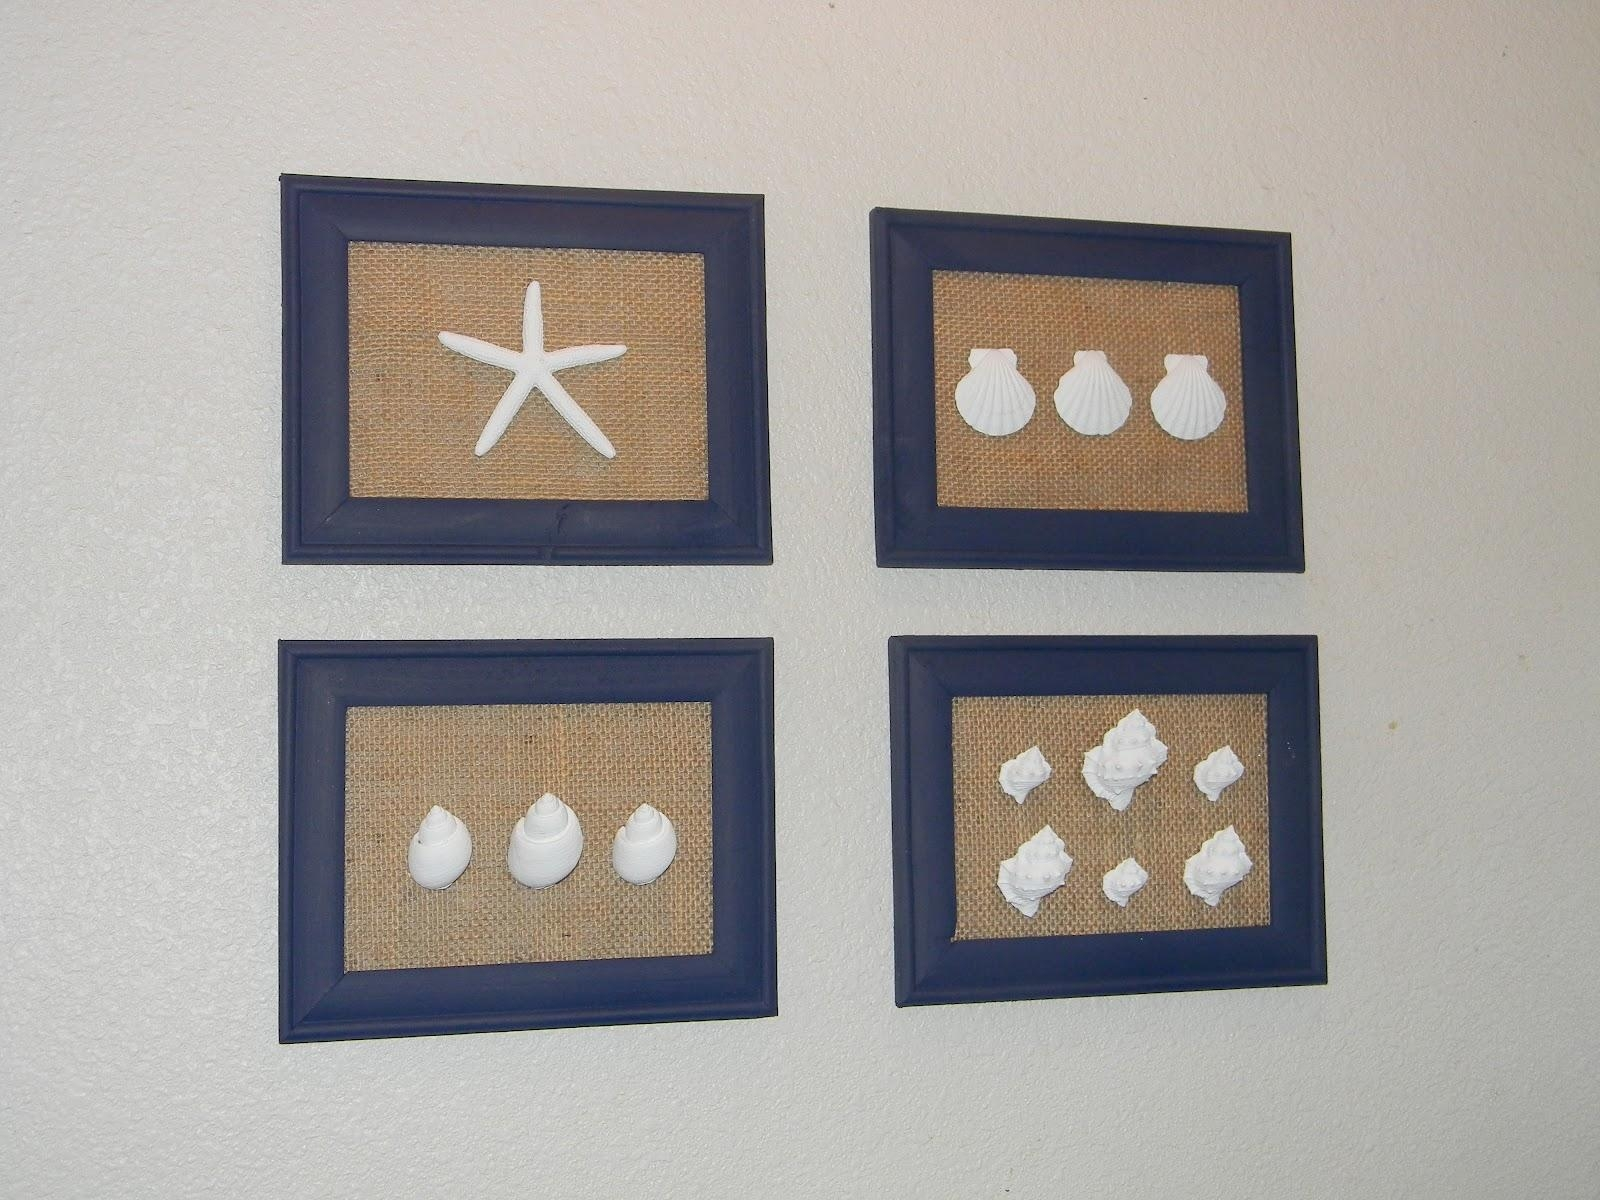 Brandy's Creations: Diy Sea Shell And Burlap Wall Art With Wall Art With Seashells (Image 9 of 20)